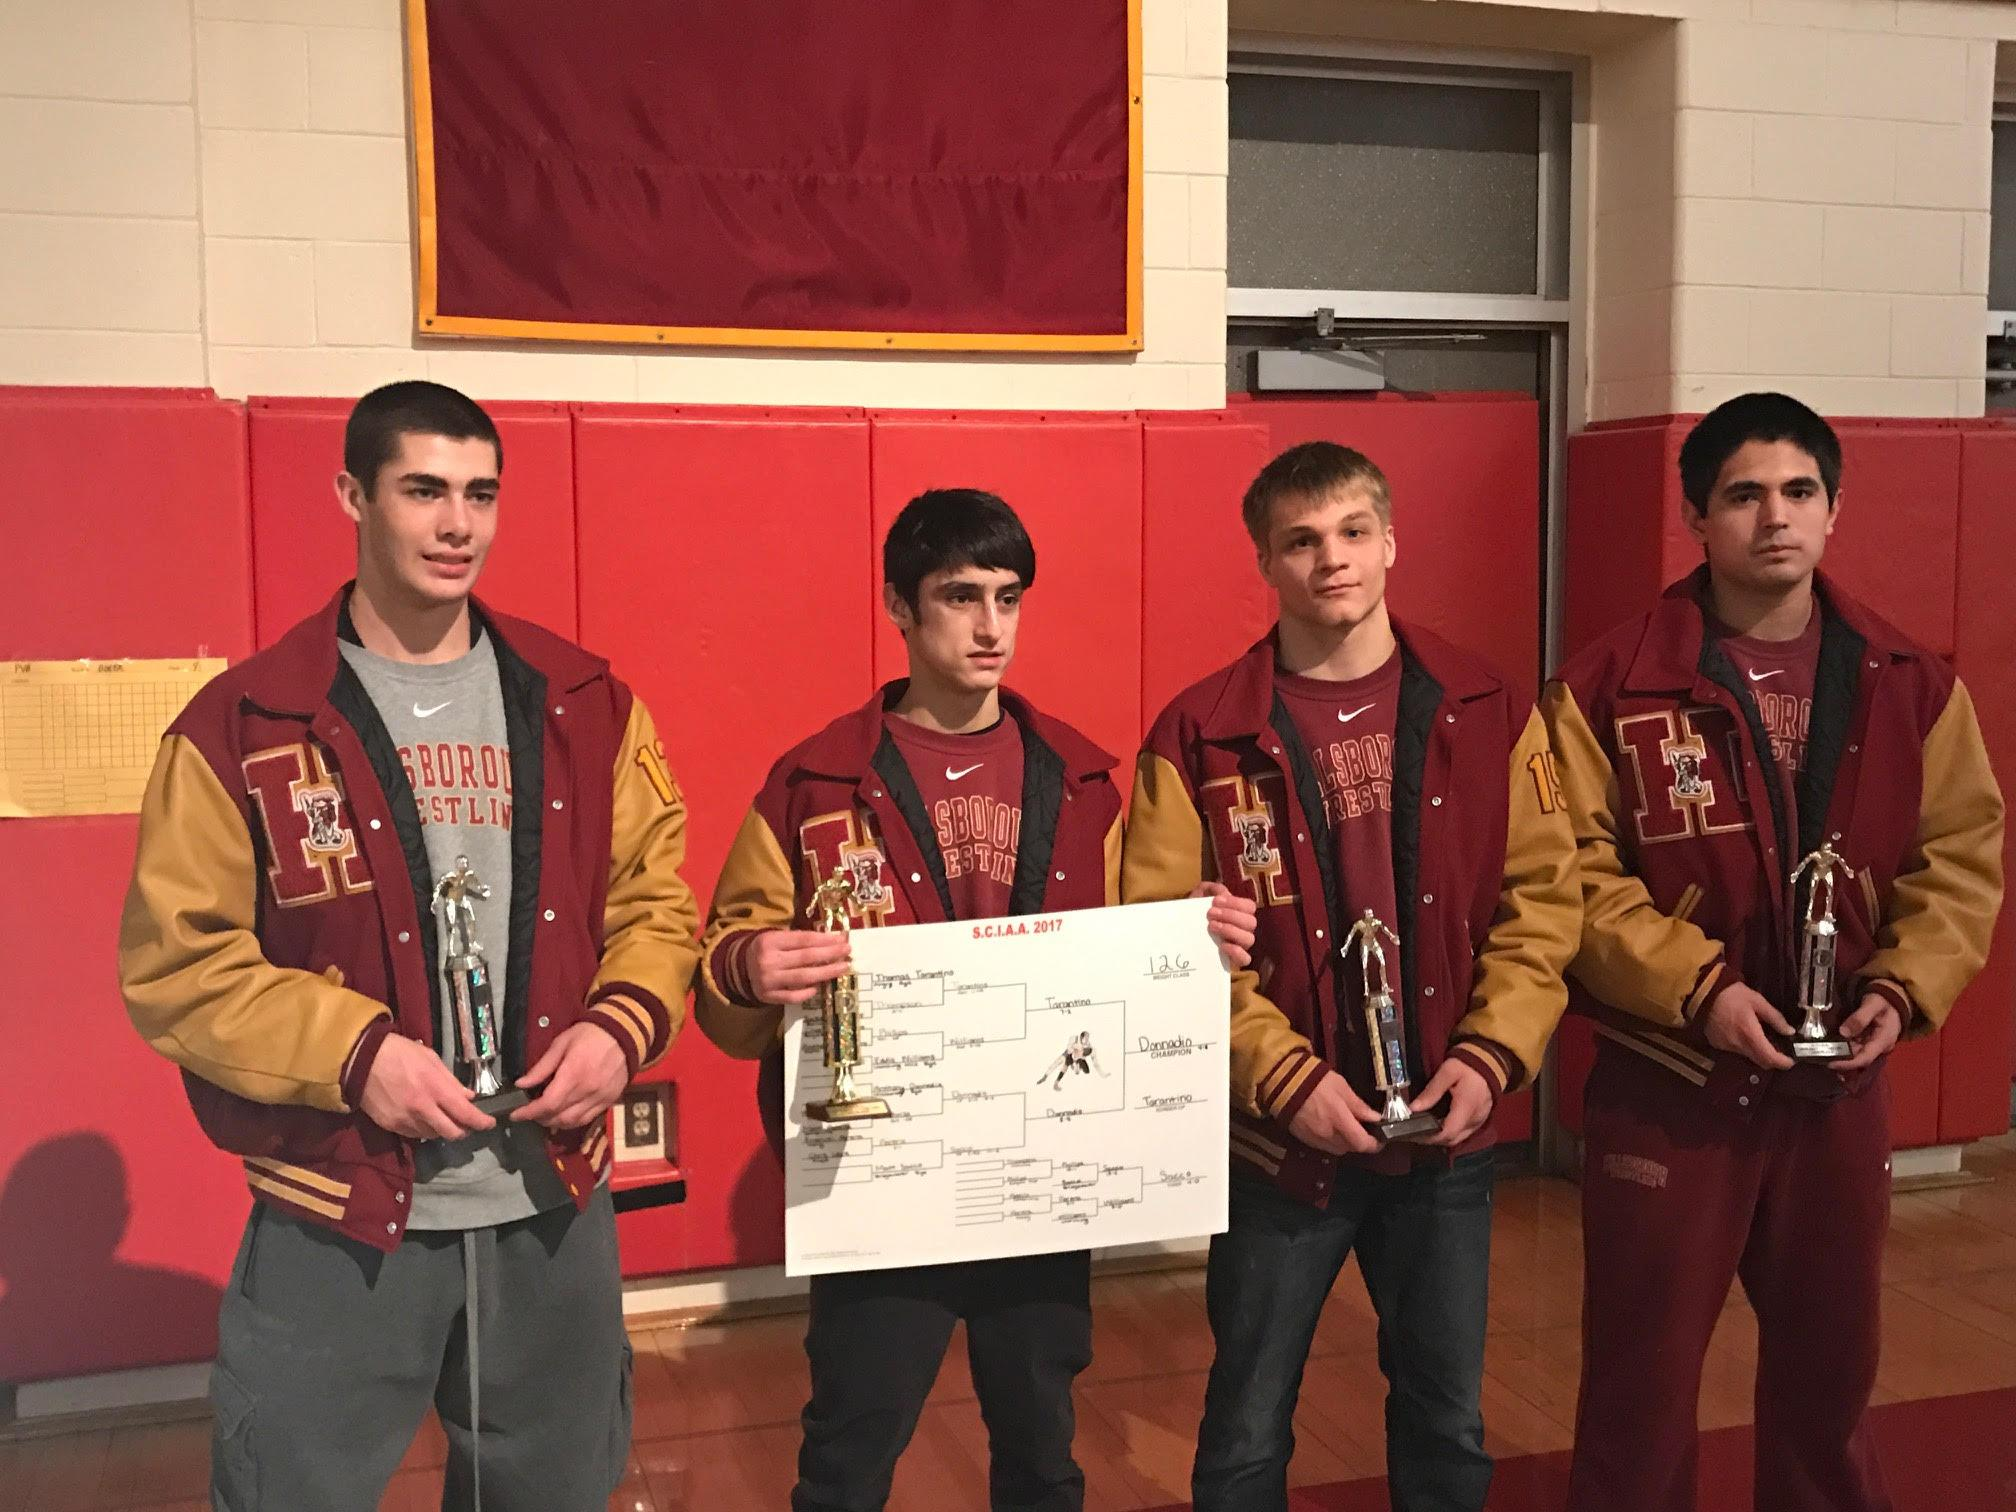 From left to right, juniors Mike Dinardi, Anthony Donnadio, and Kevin Faulkner pose with sophomore Emilio Guerrero Nieto and some hard-earned hardware after the East Brunswick Invitational. The team finished in third place.